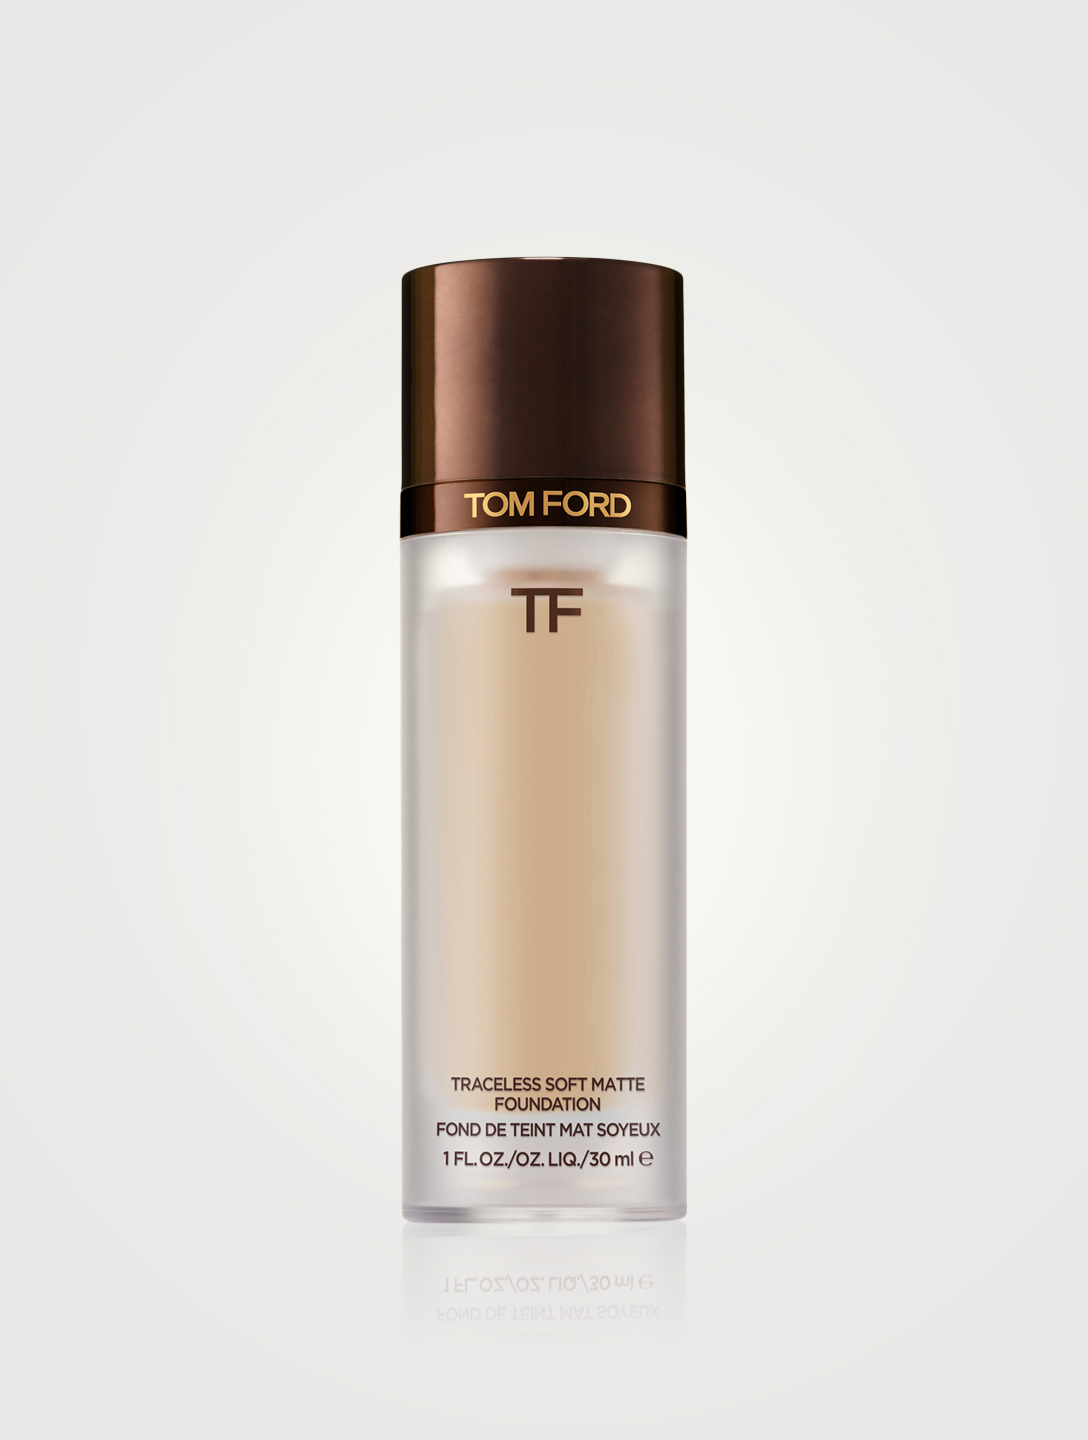 TOM FORD Traceless Soft Matte Foundation Beauty Neutral